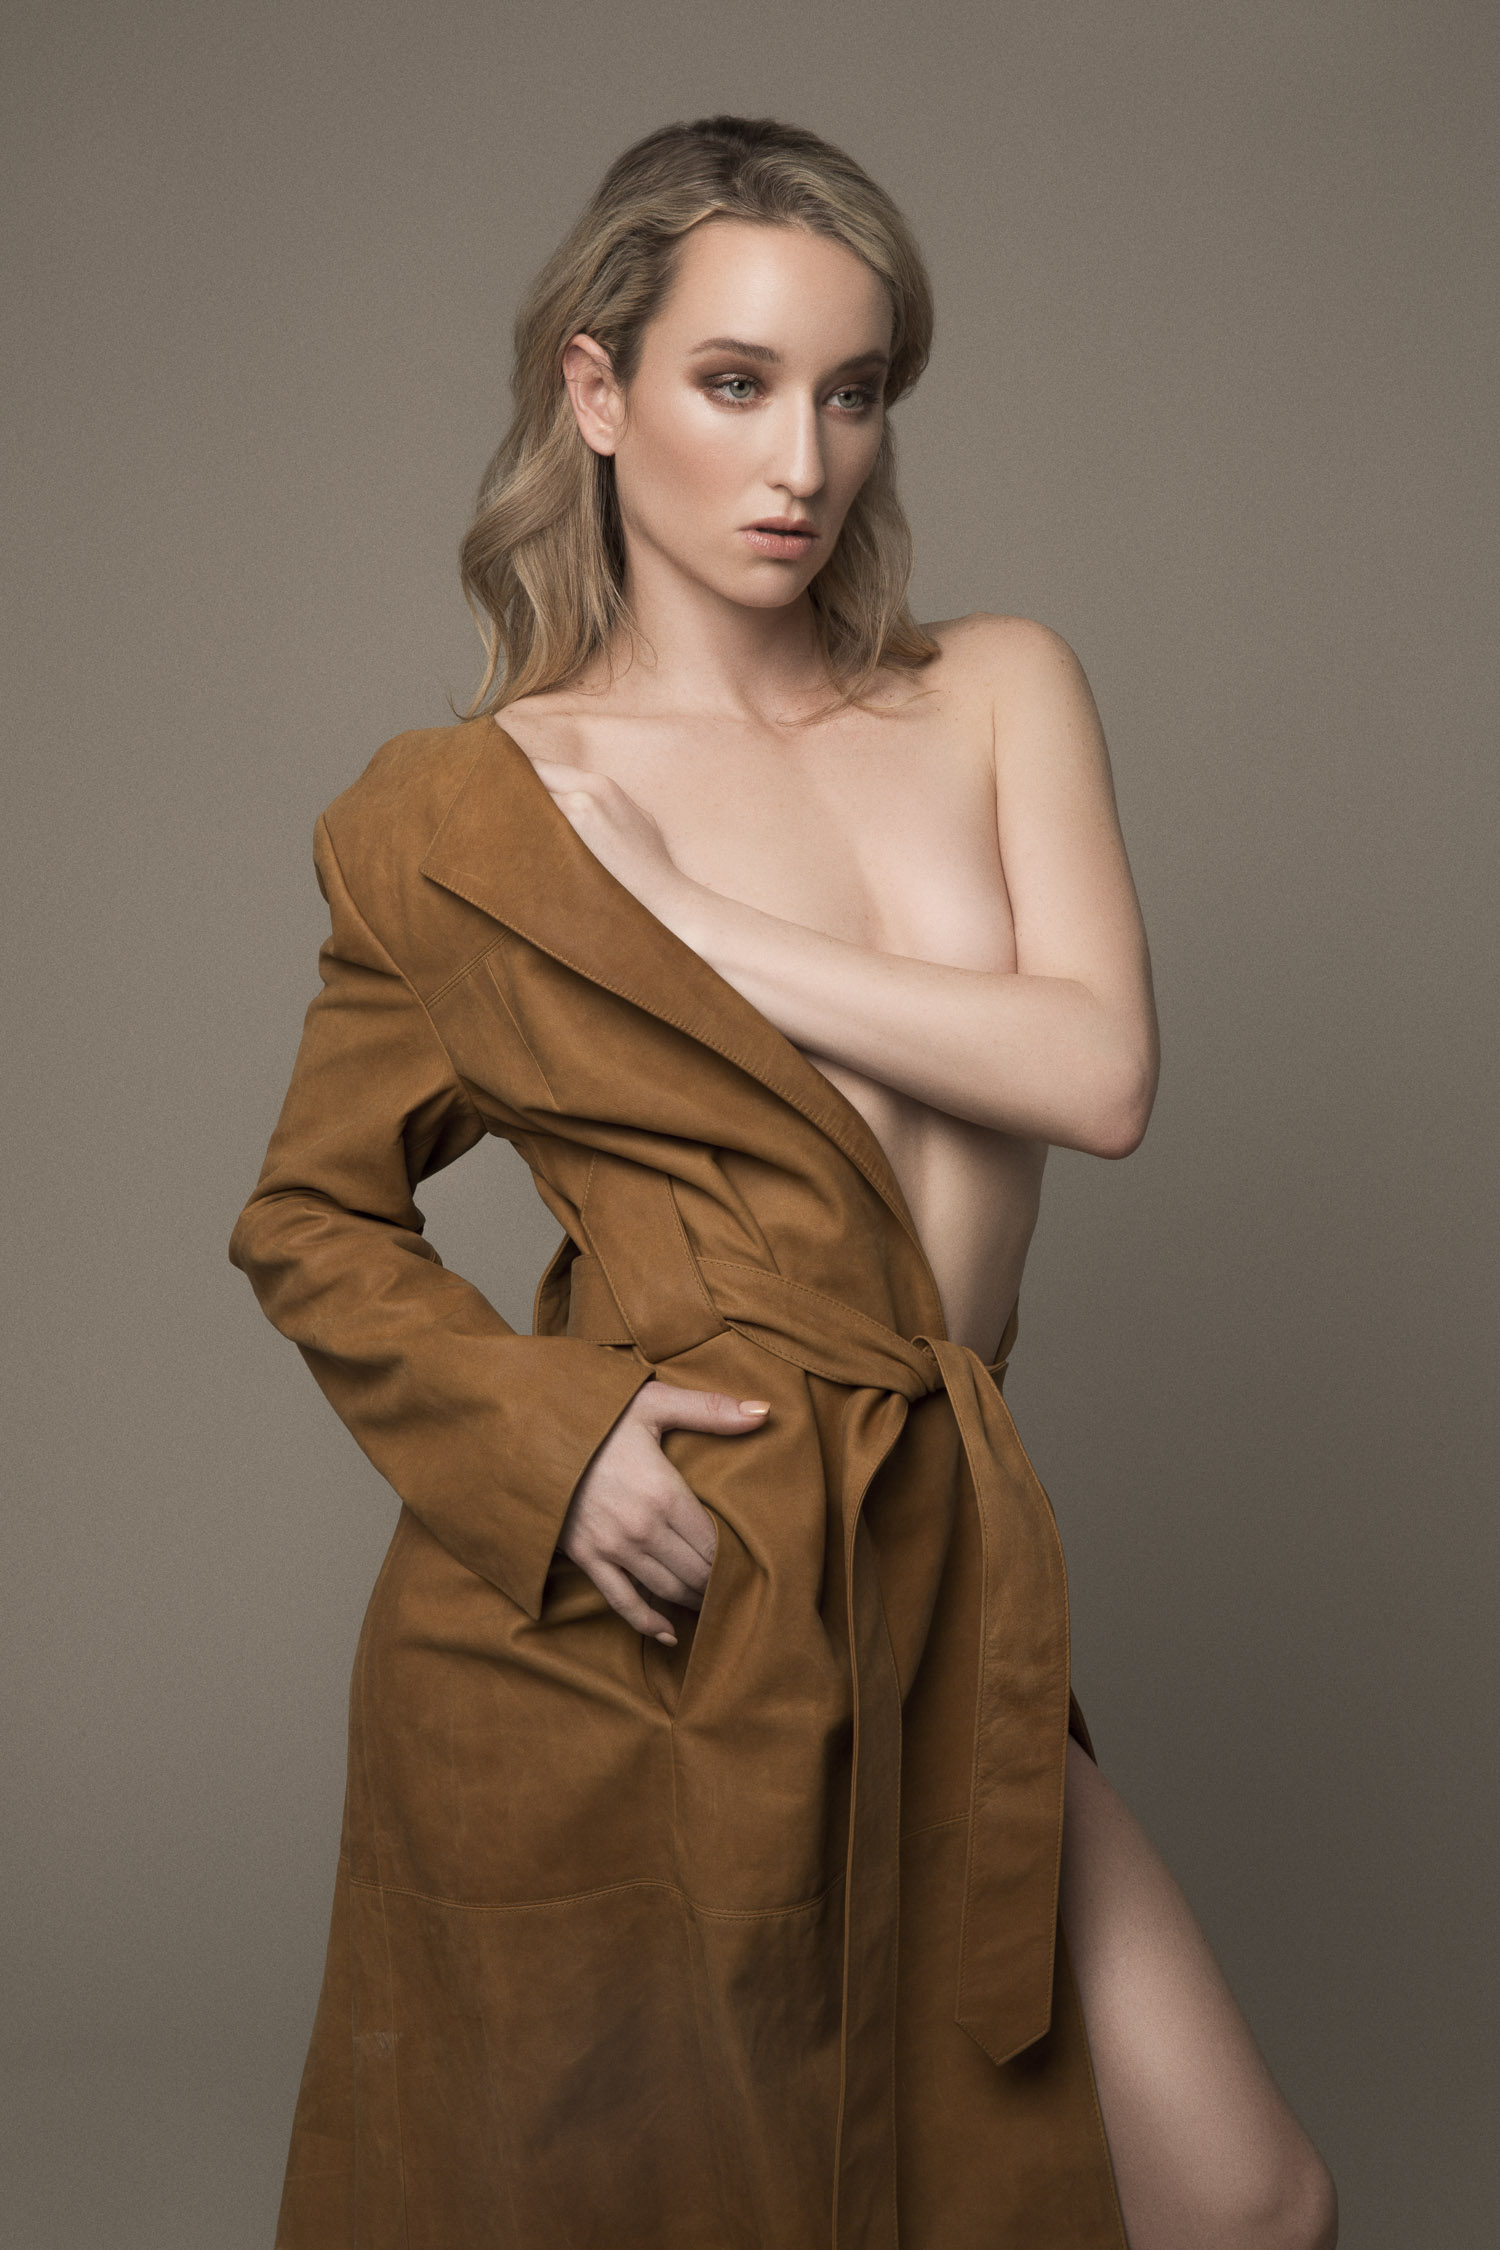 Nude model wearing a leather trenchcoat